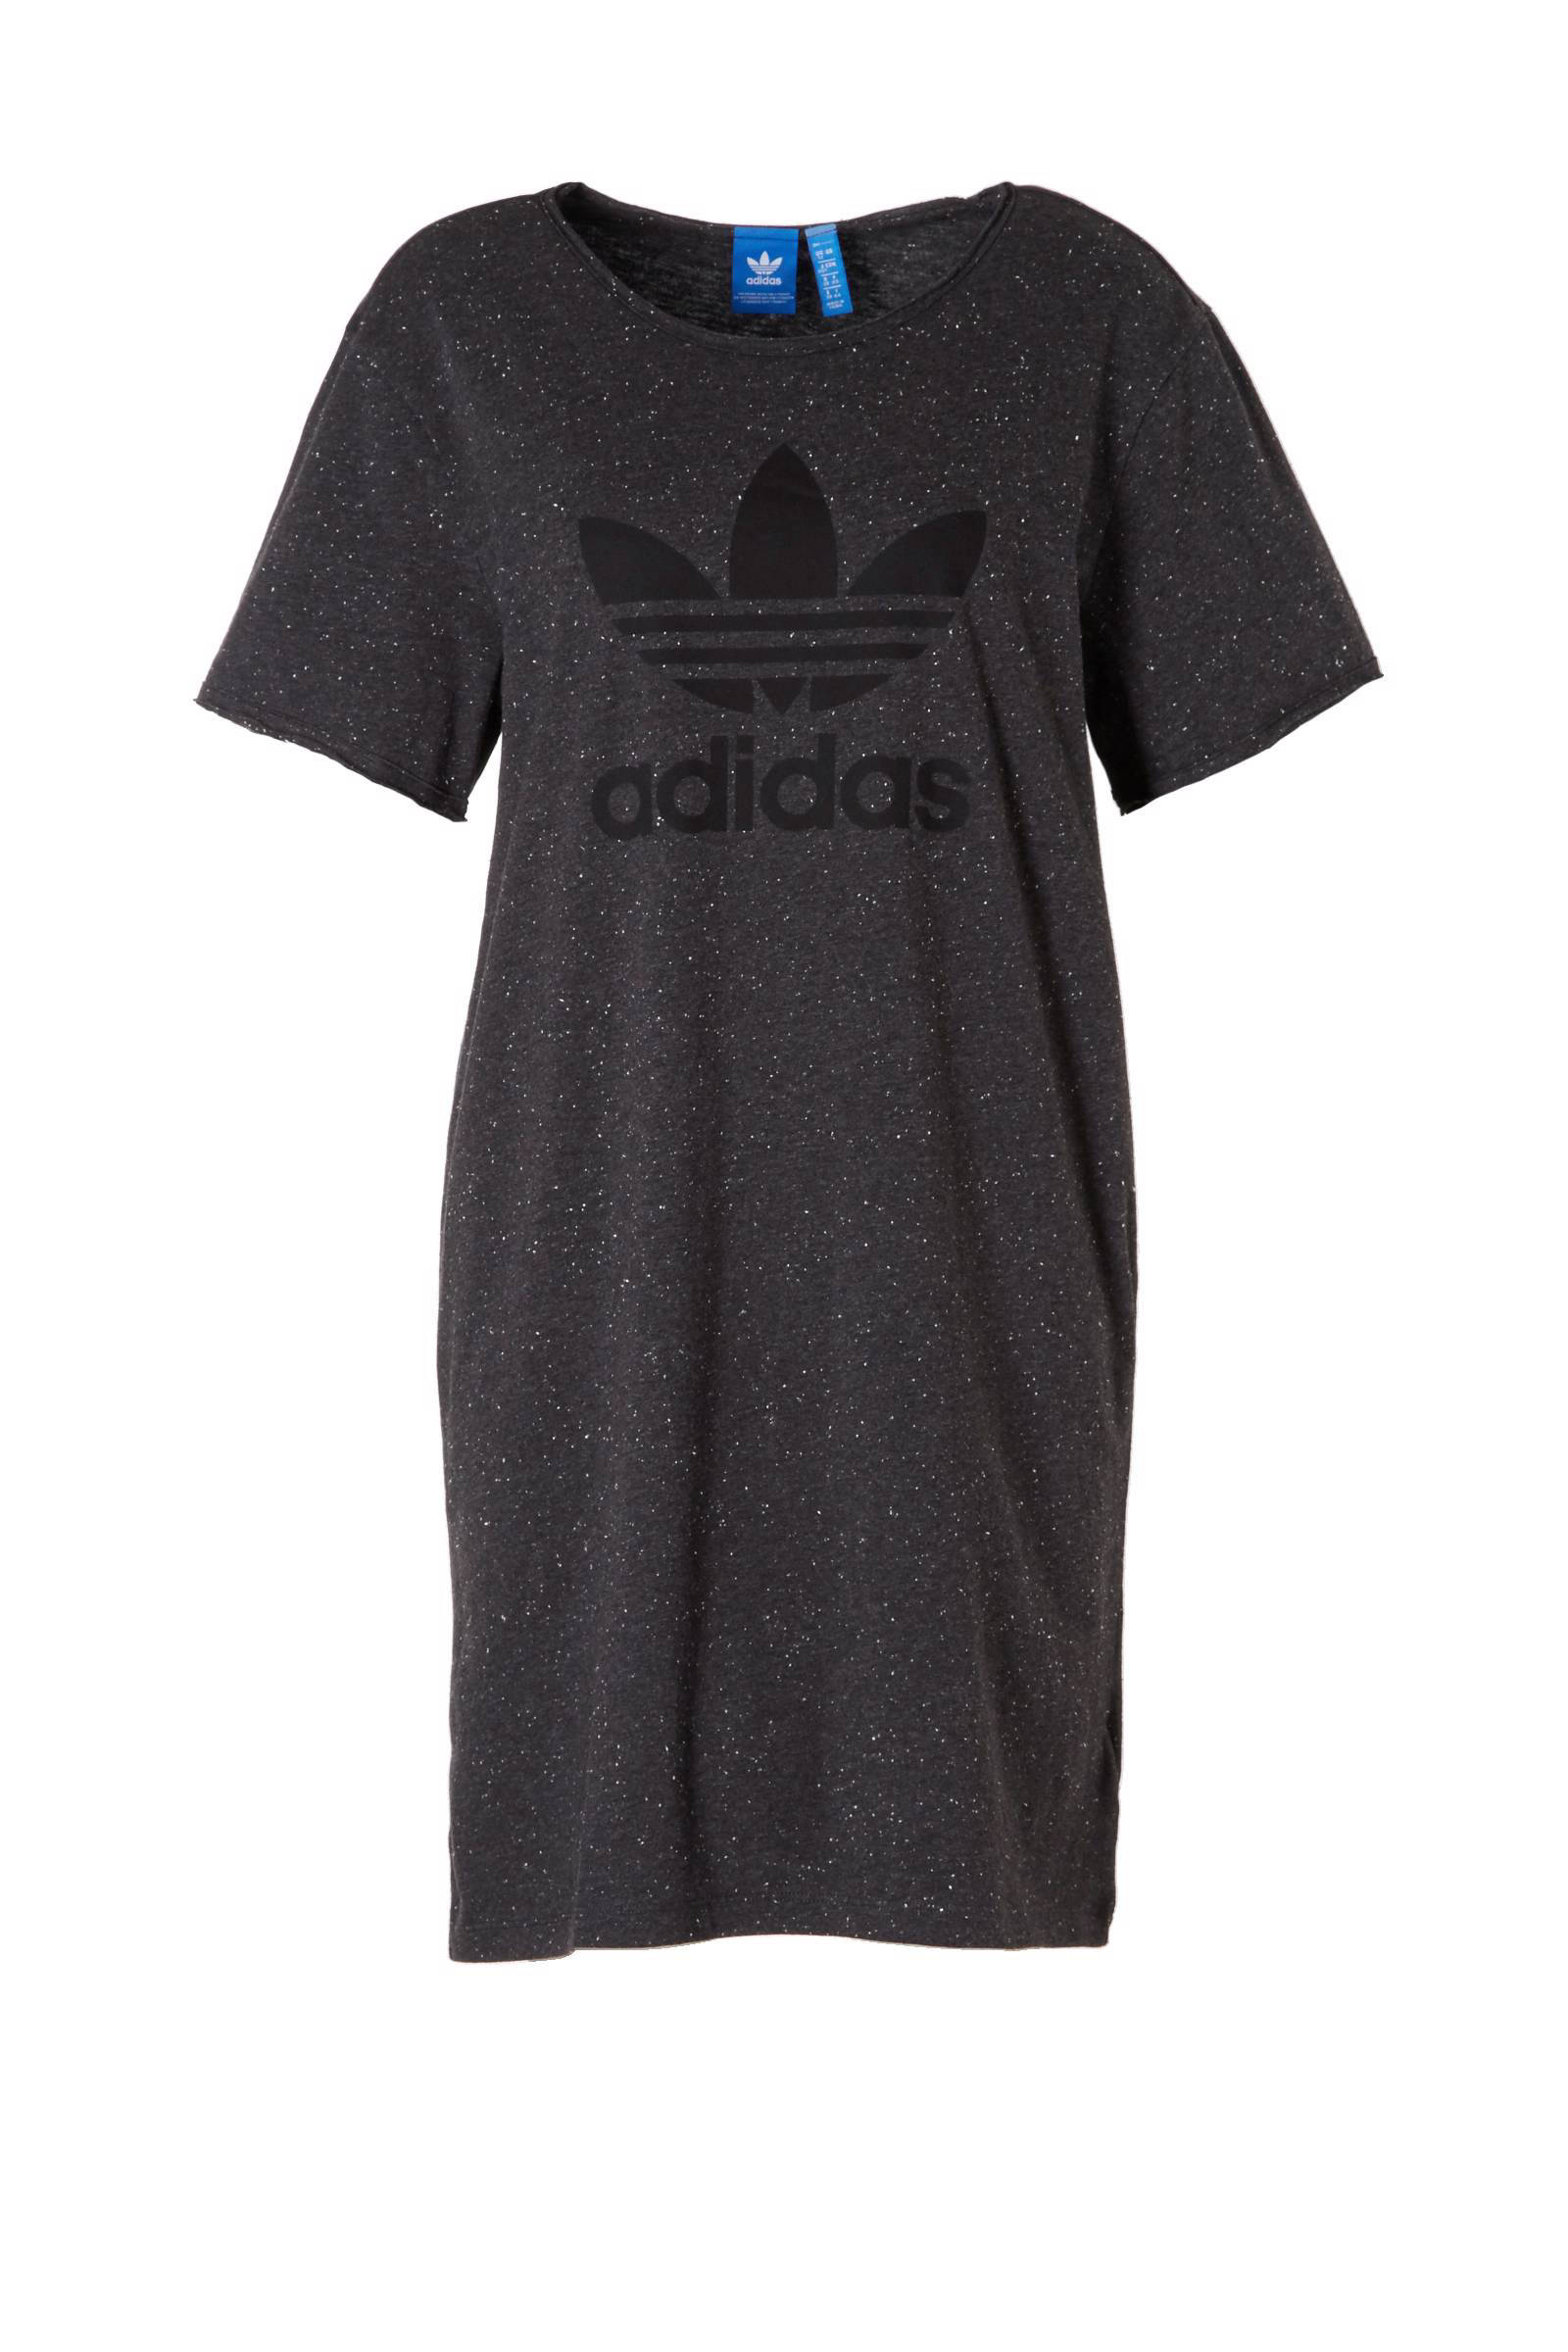 adidas Originals T-shirt jurk